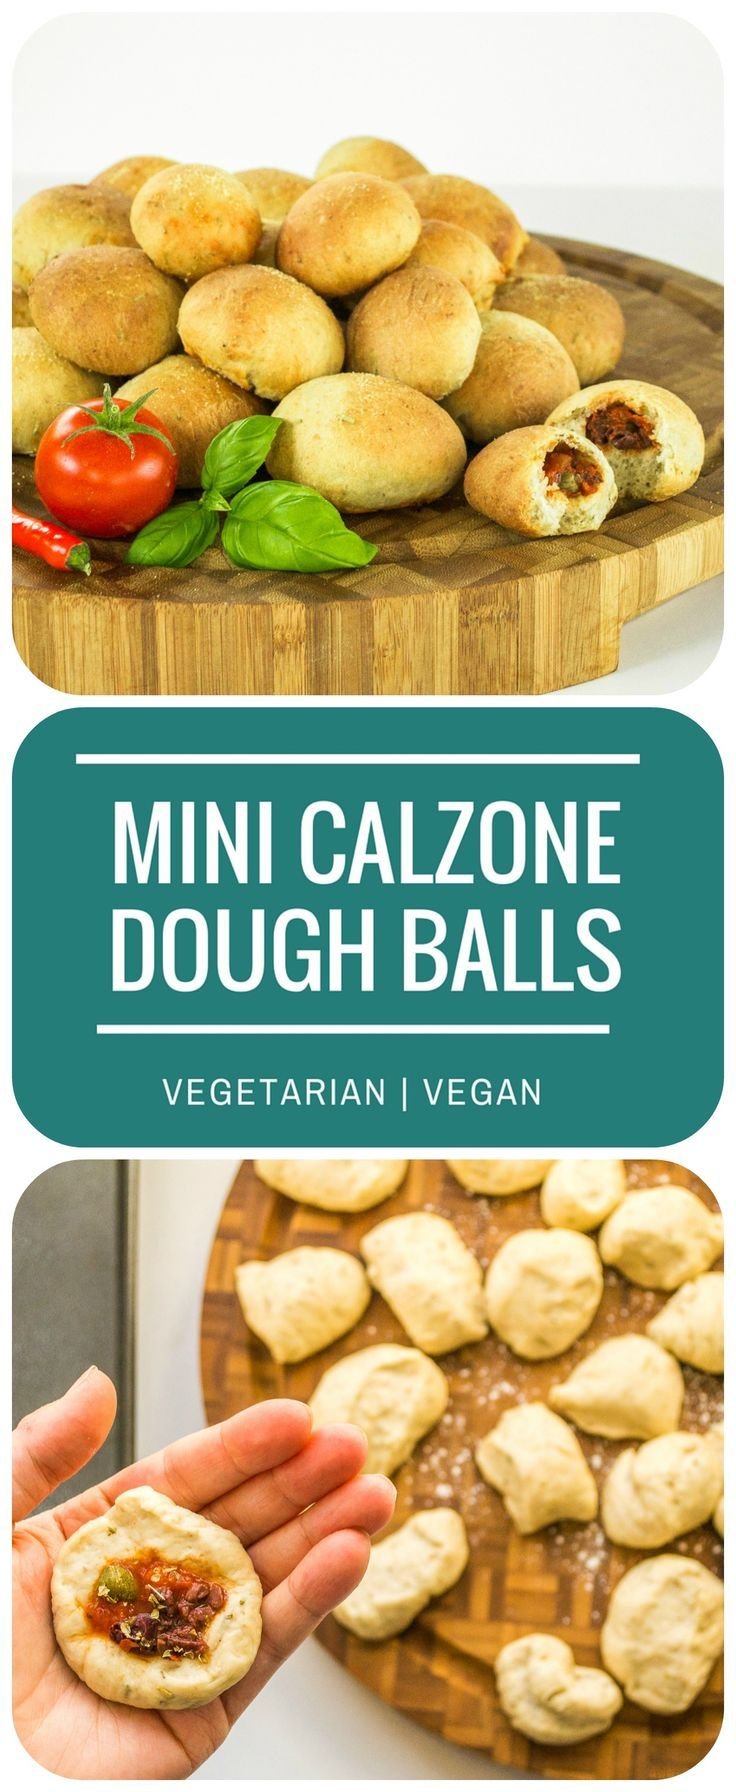 These Mini Calzone Dough Balls are a fabulous vegetarian or vegan party nibble - serve as they are, or with a salsa or avocado mayo dip, or garlic butter!